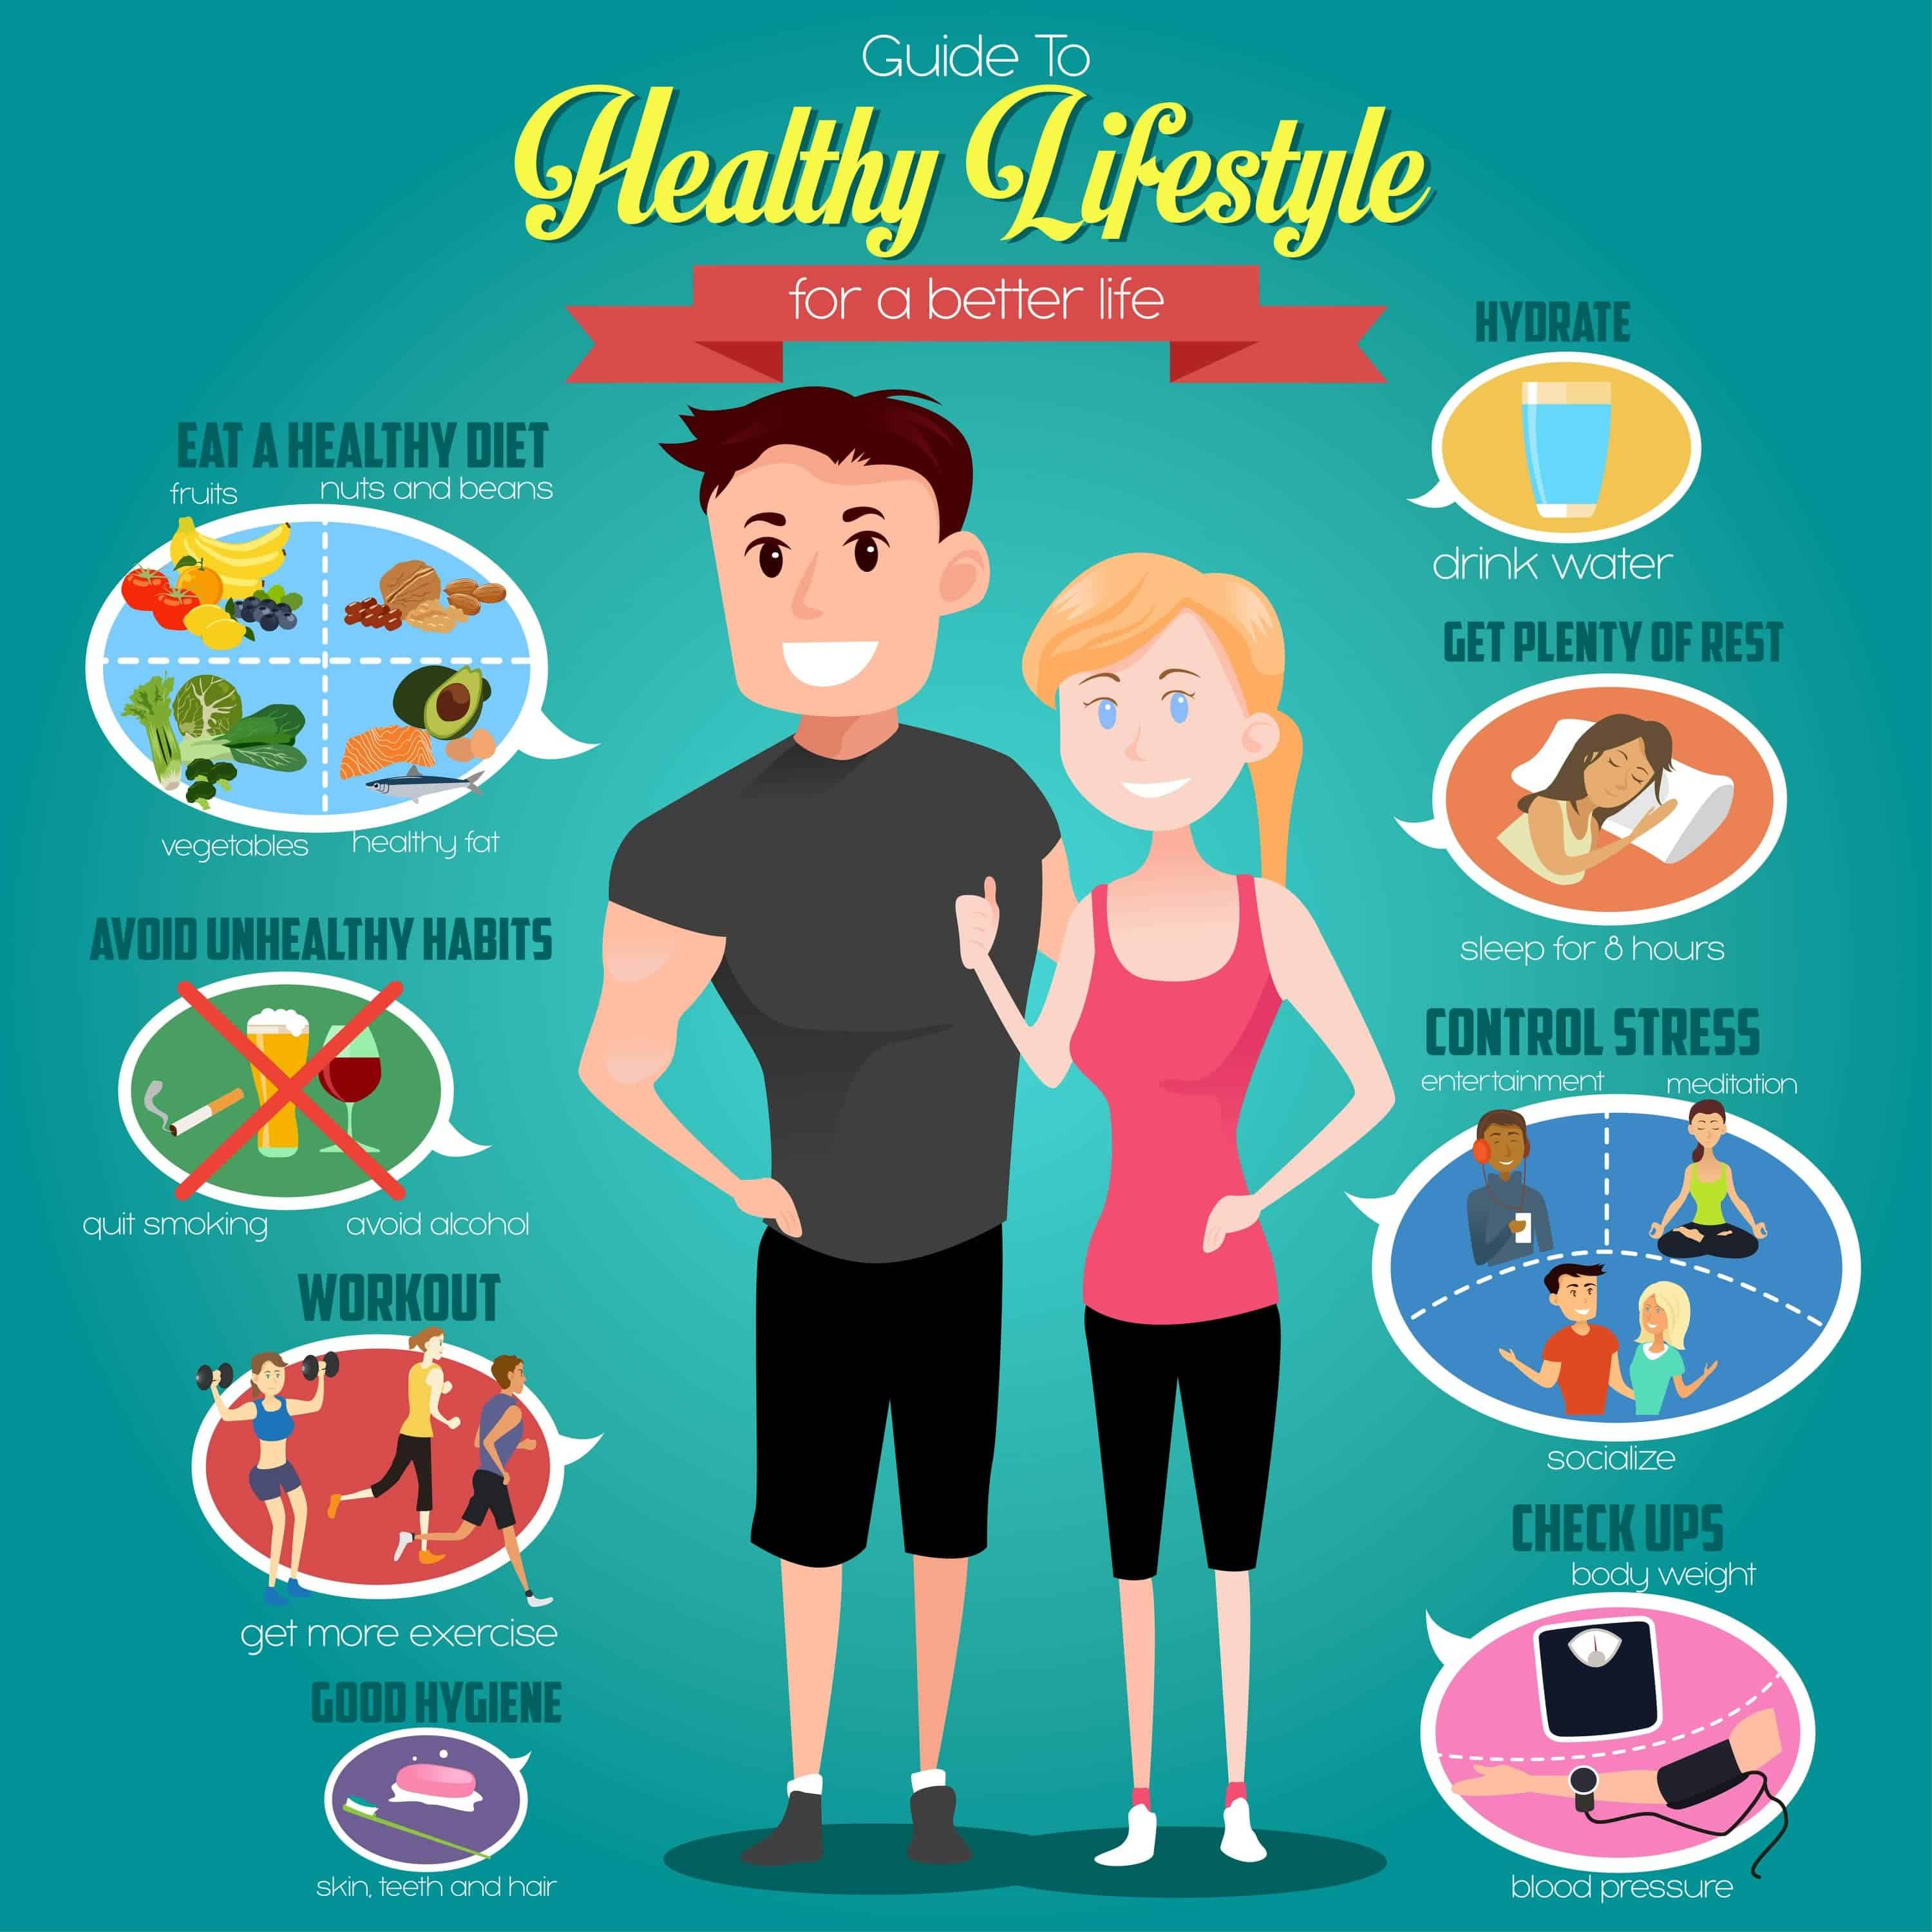 12 Steps To Healthy Lifestyle Habits That Will Change Your Life